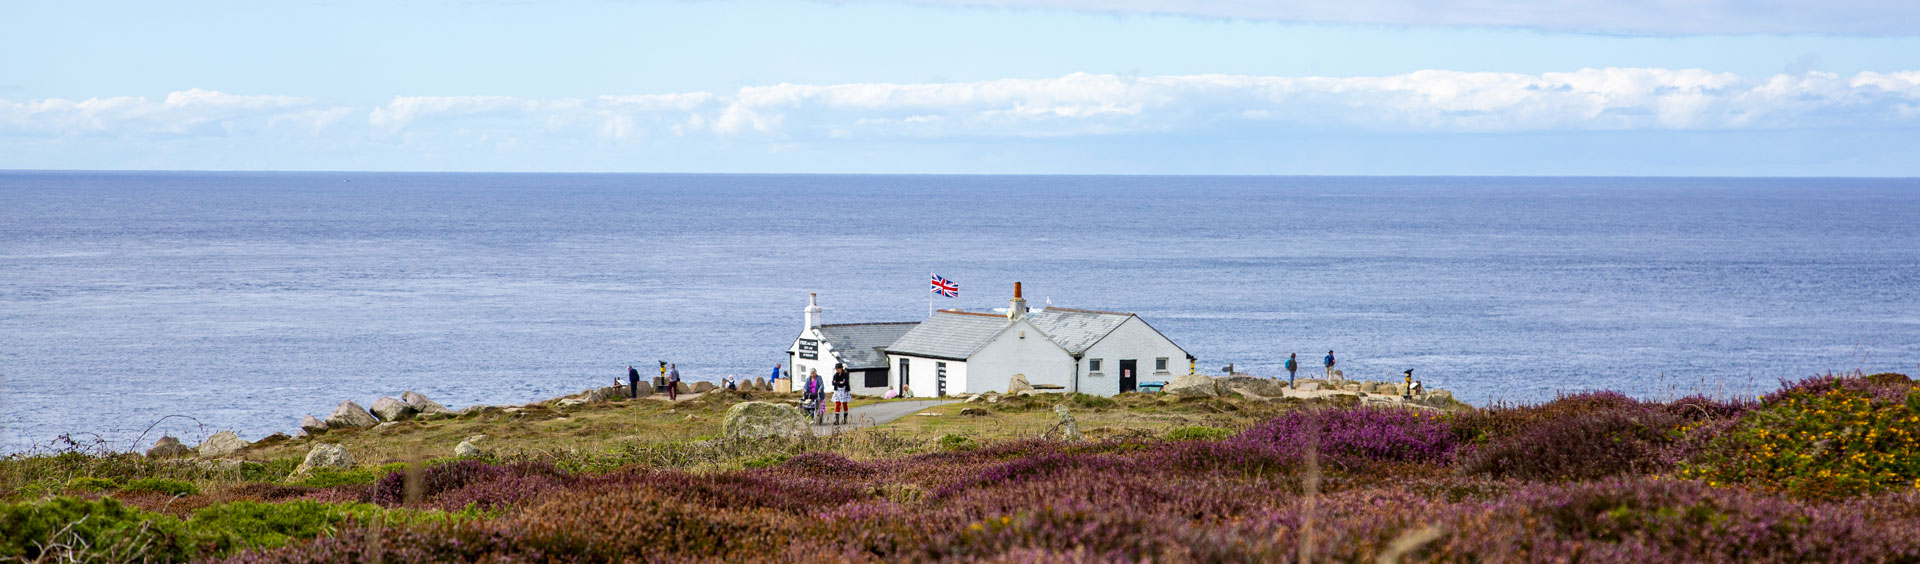 White seaside cottage surrounded by purple heather